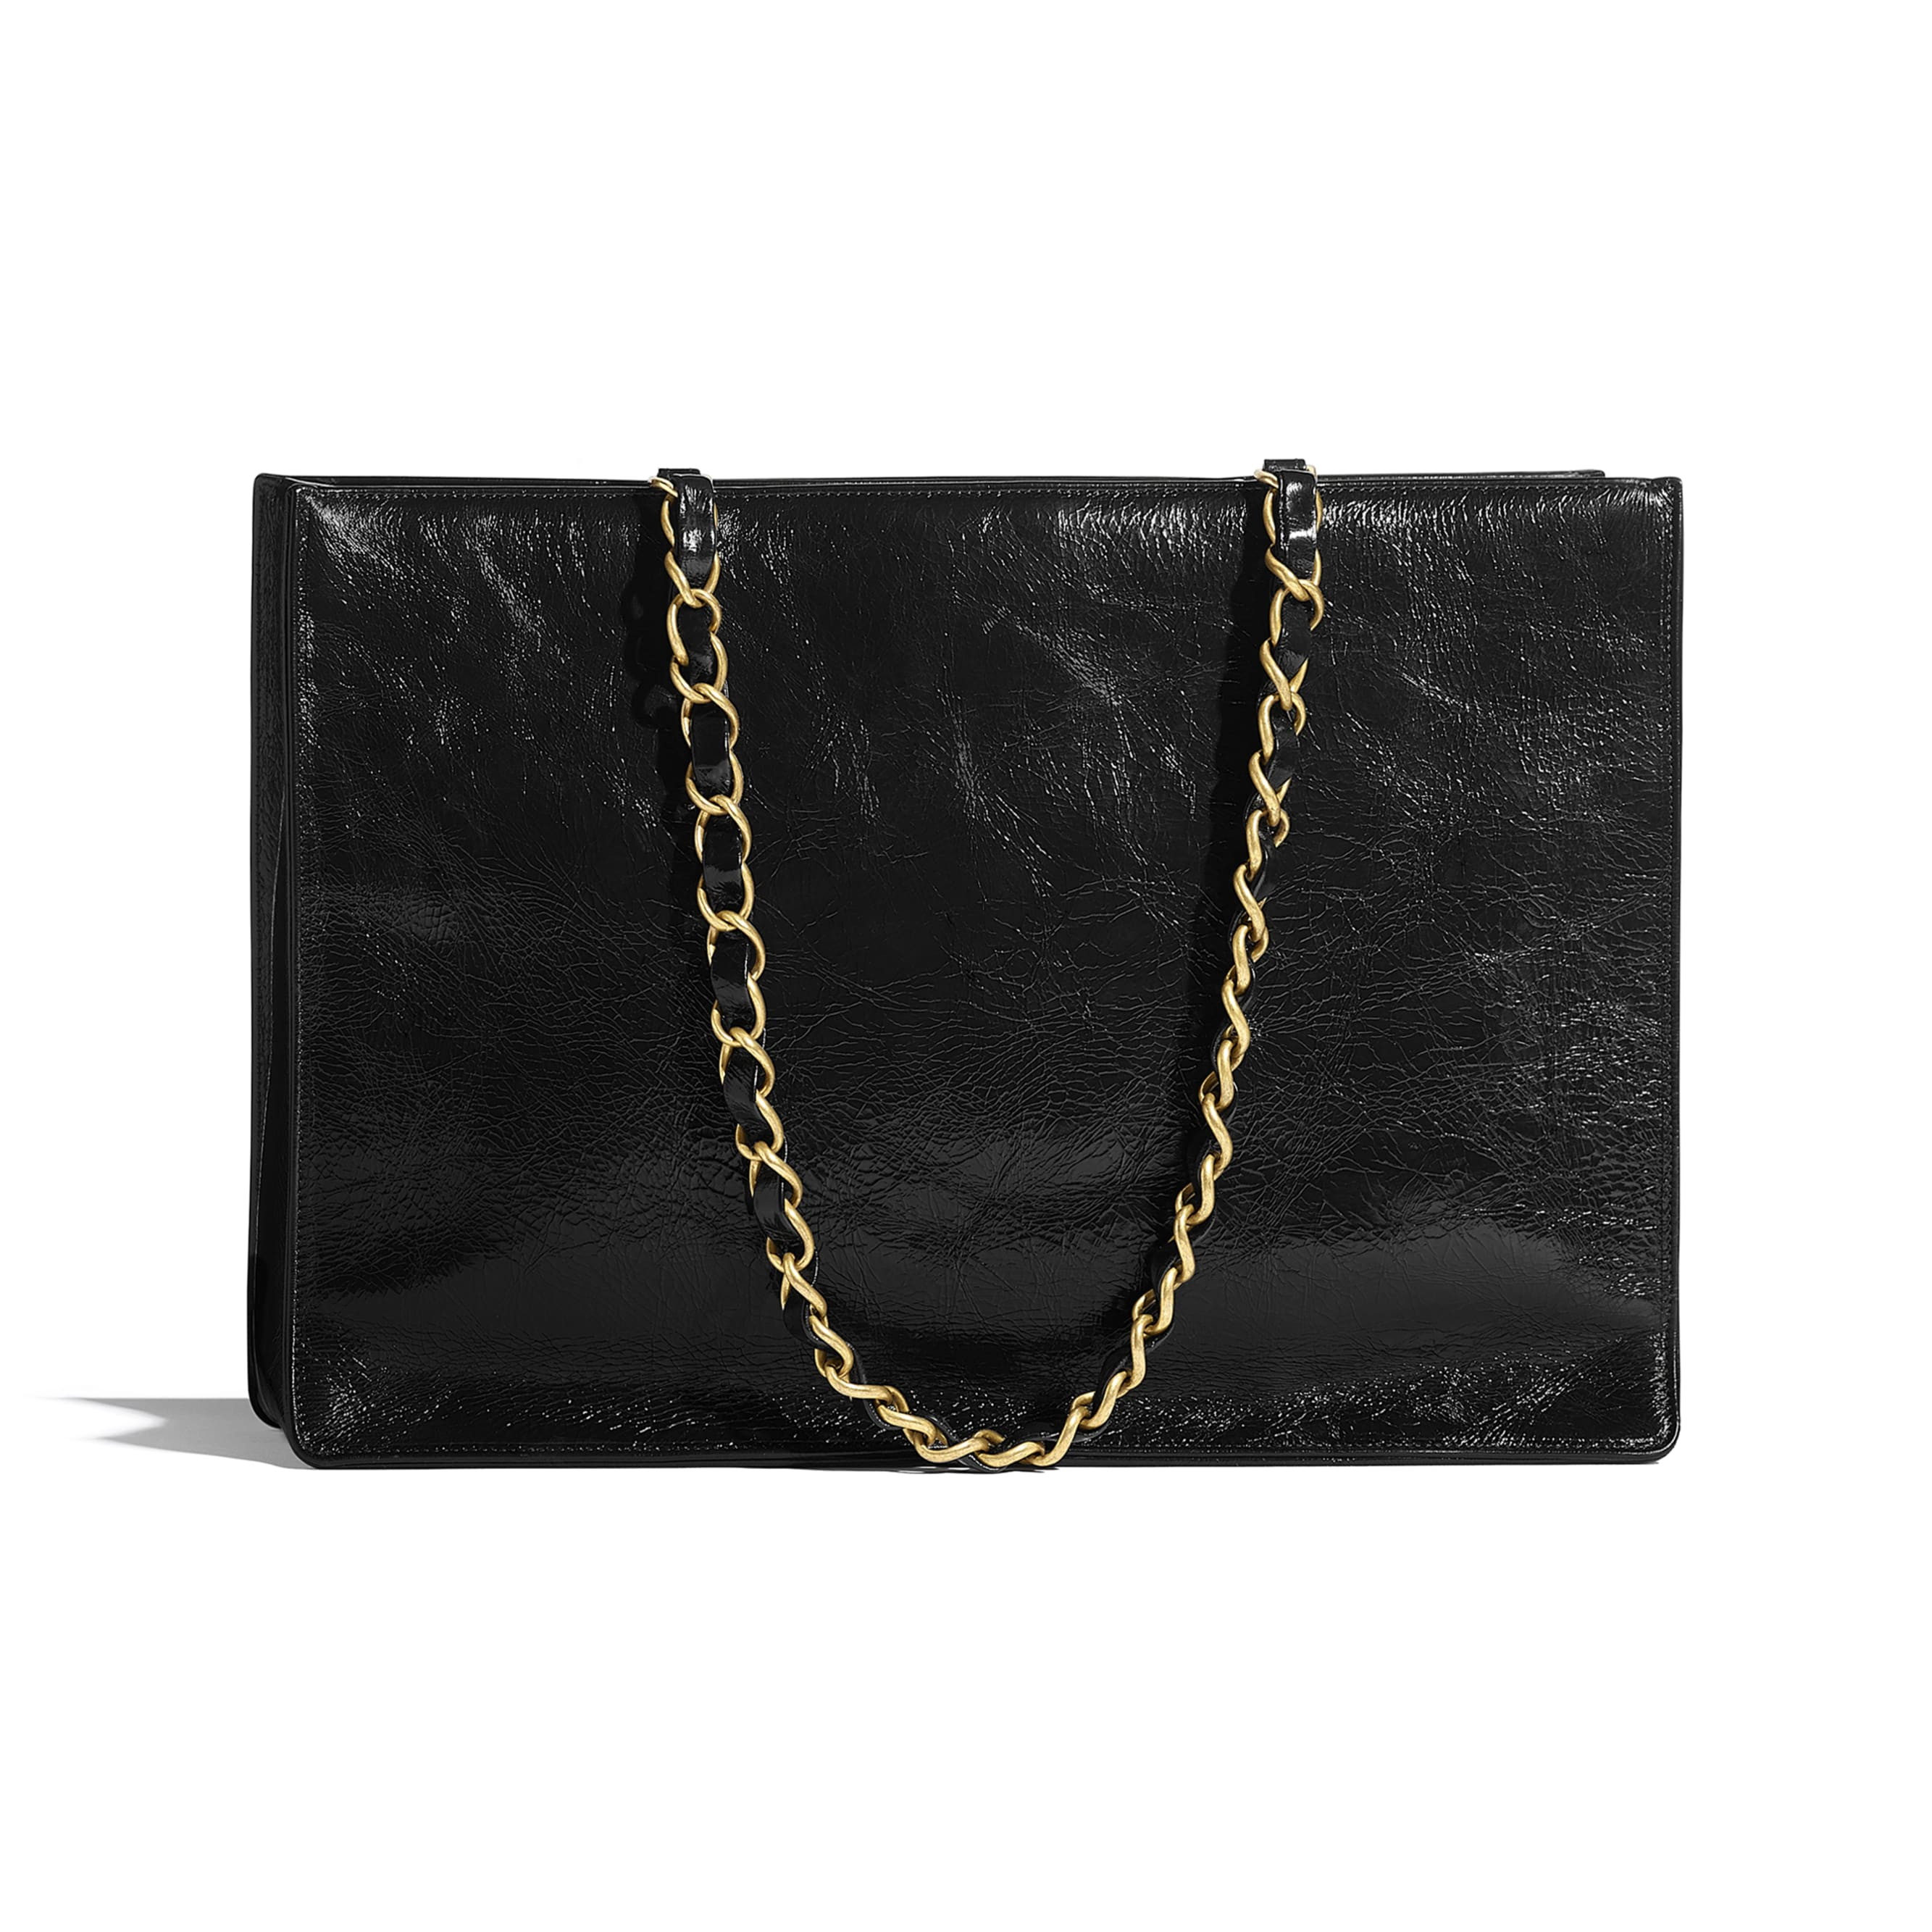 Shopping Bag - Black - Shiny Aged Calfskin & Gold-Tone Metal - CHANEL - Alternative view - see standard sized version